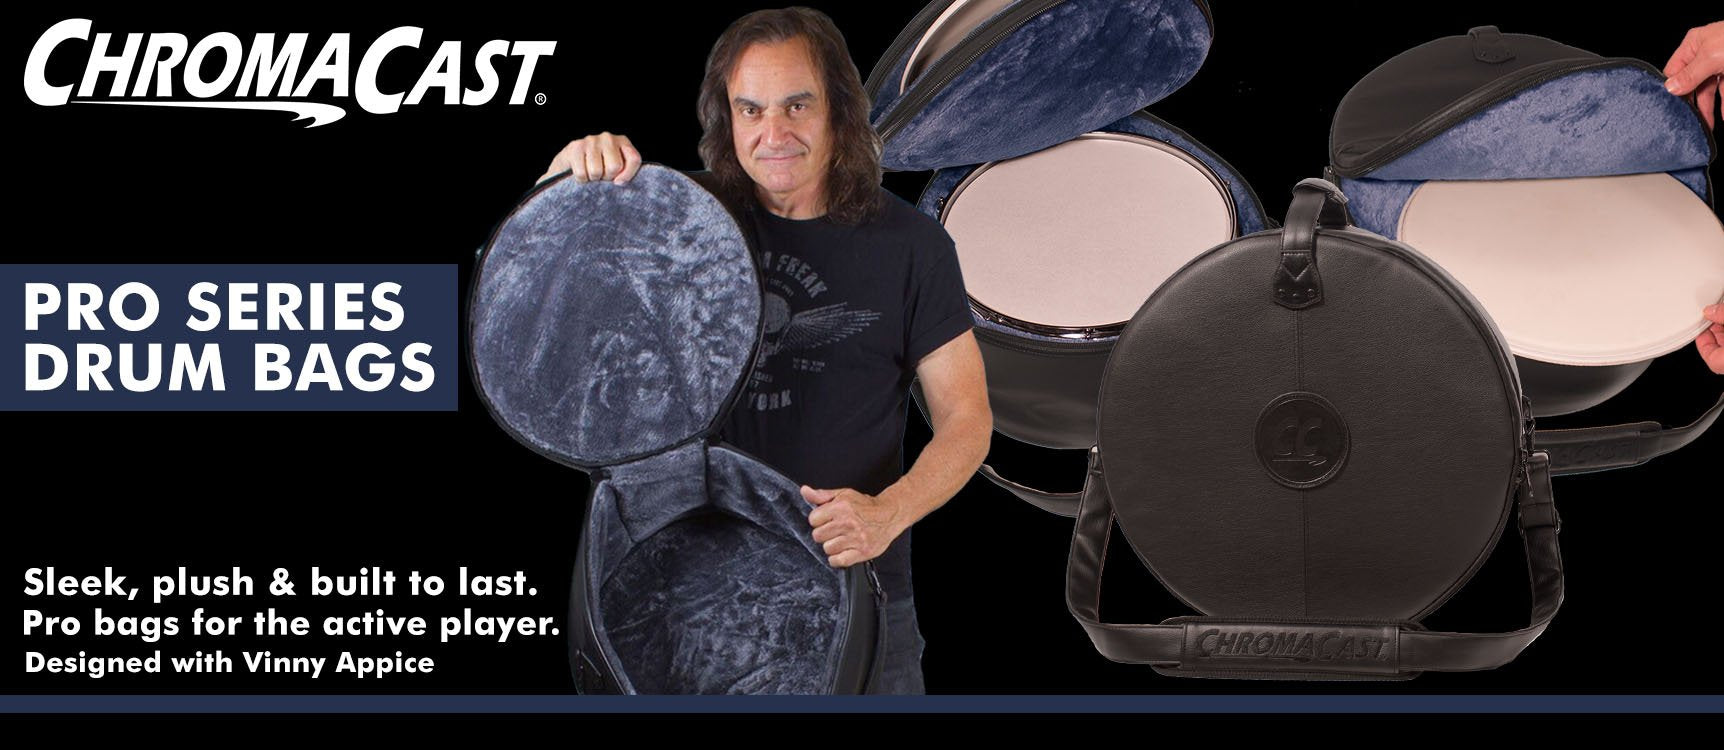 ChromaCast Pro Series Drum Bags